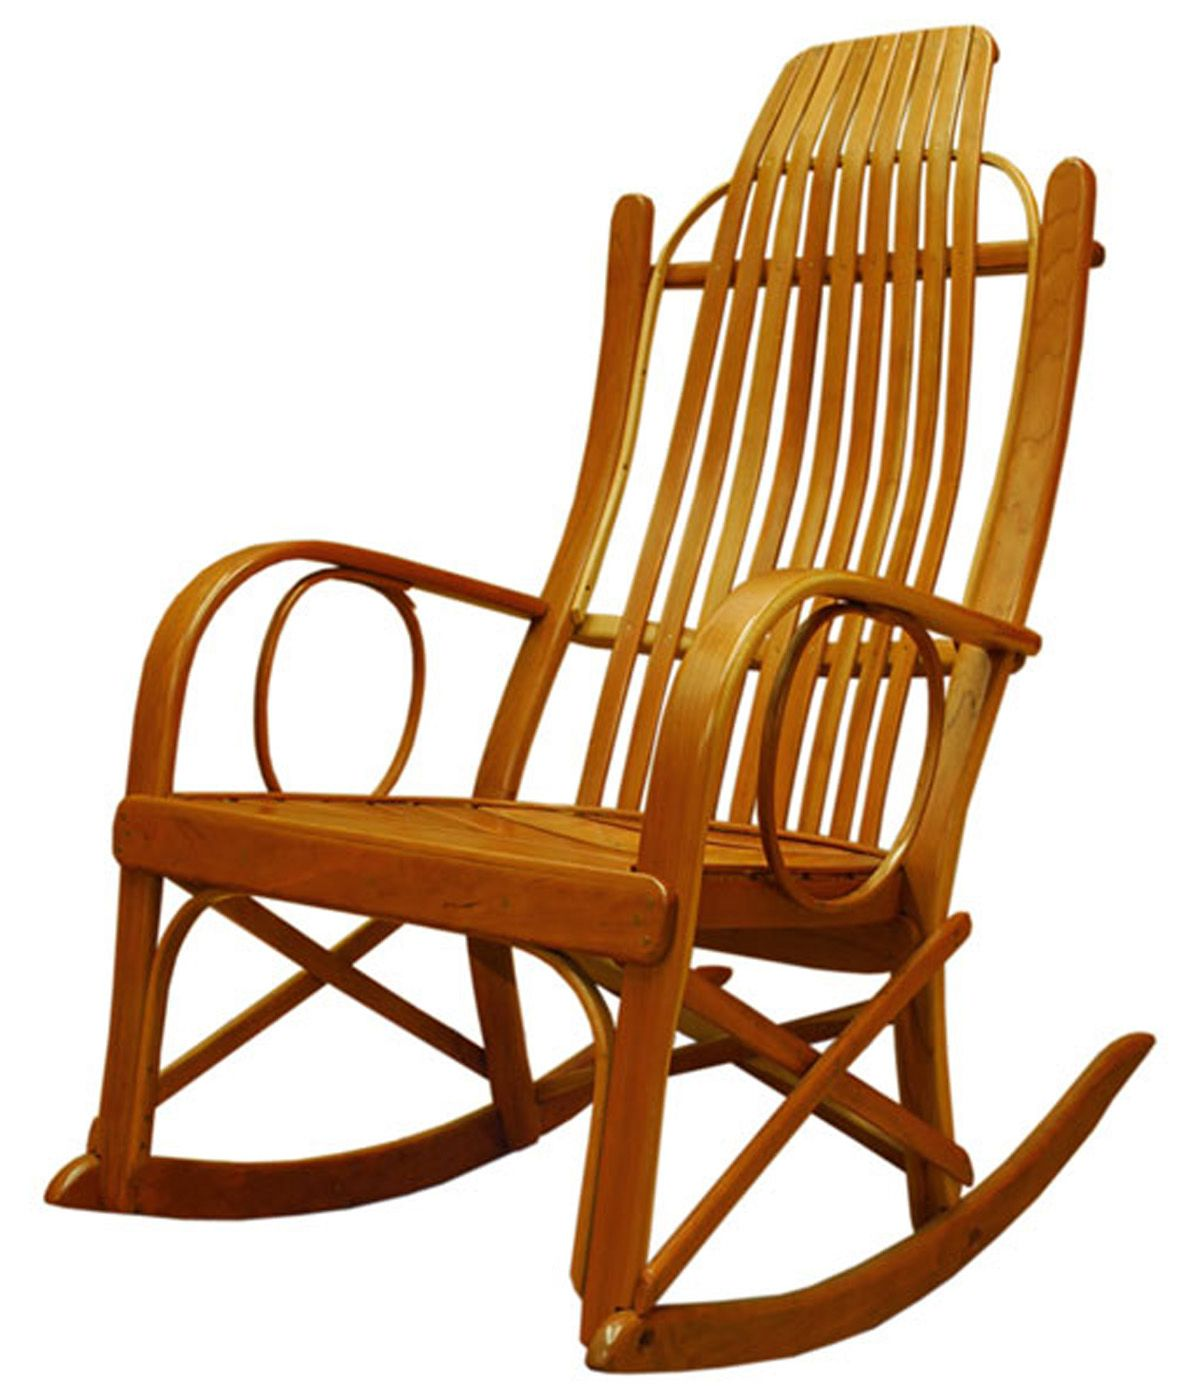 amish solid cherry bentwood rocking chair ideas to remember rh pinterest com Old Rocking Chairs Amish Mission Rocking Chair